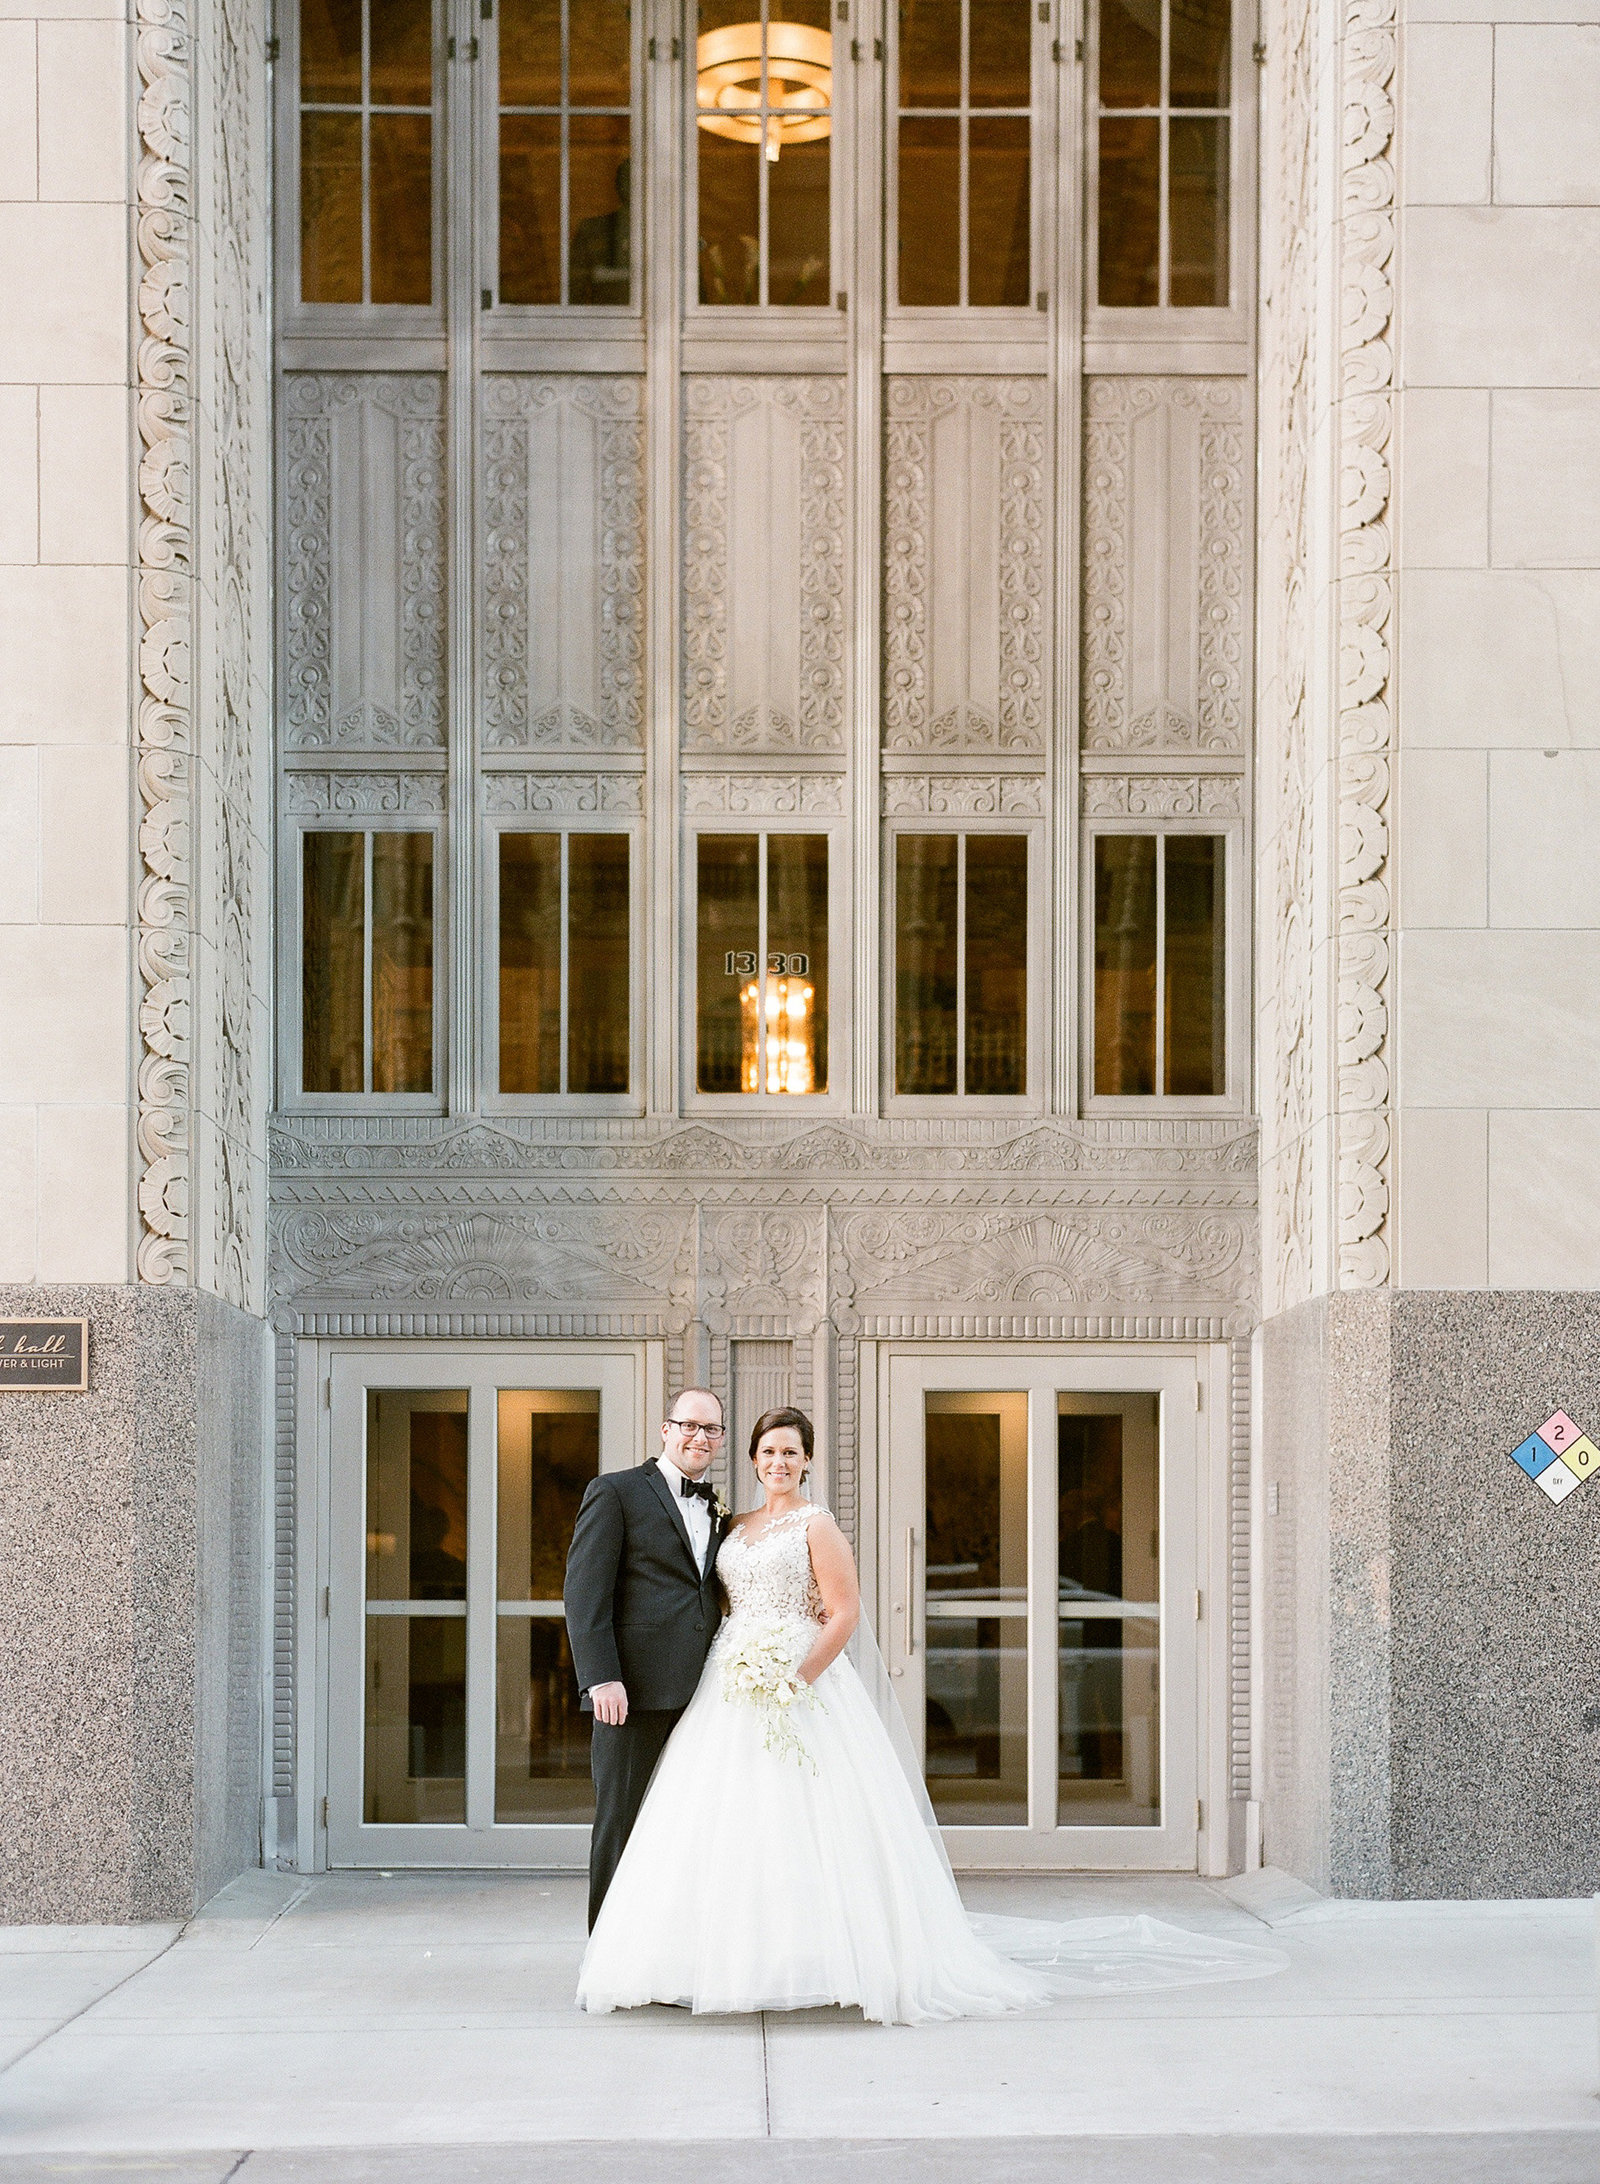 Pura-Soul-Photo-Moye-Kansas-City-Wedding-Film-84